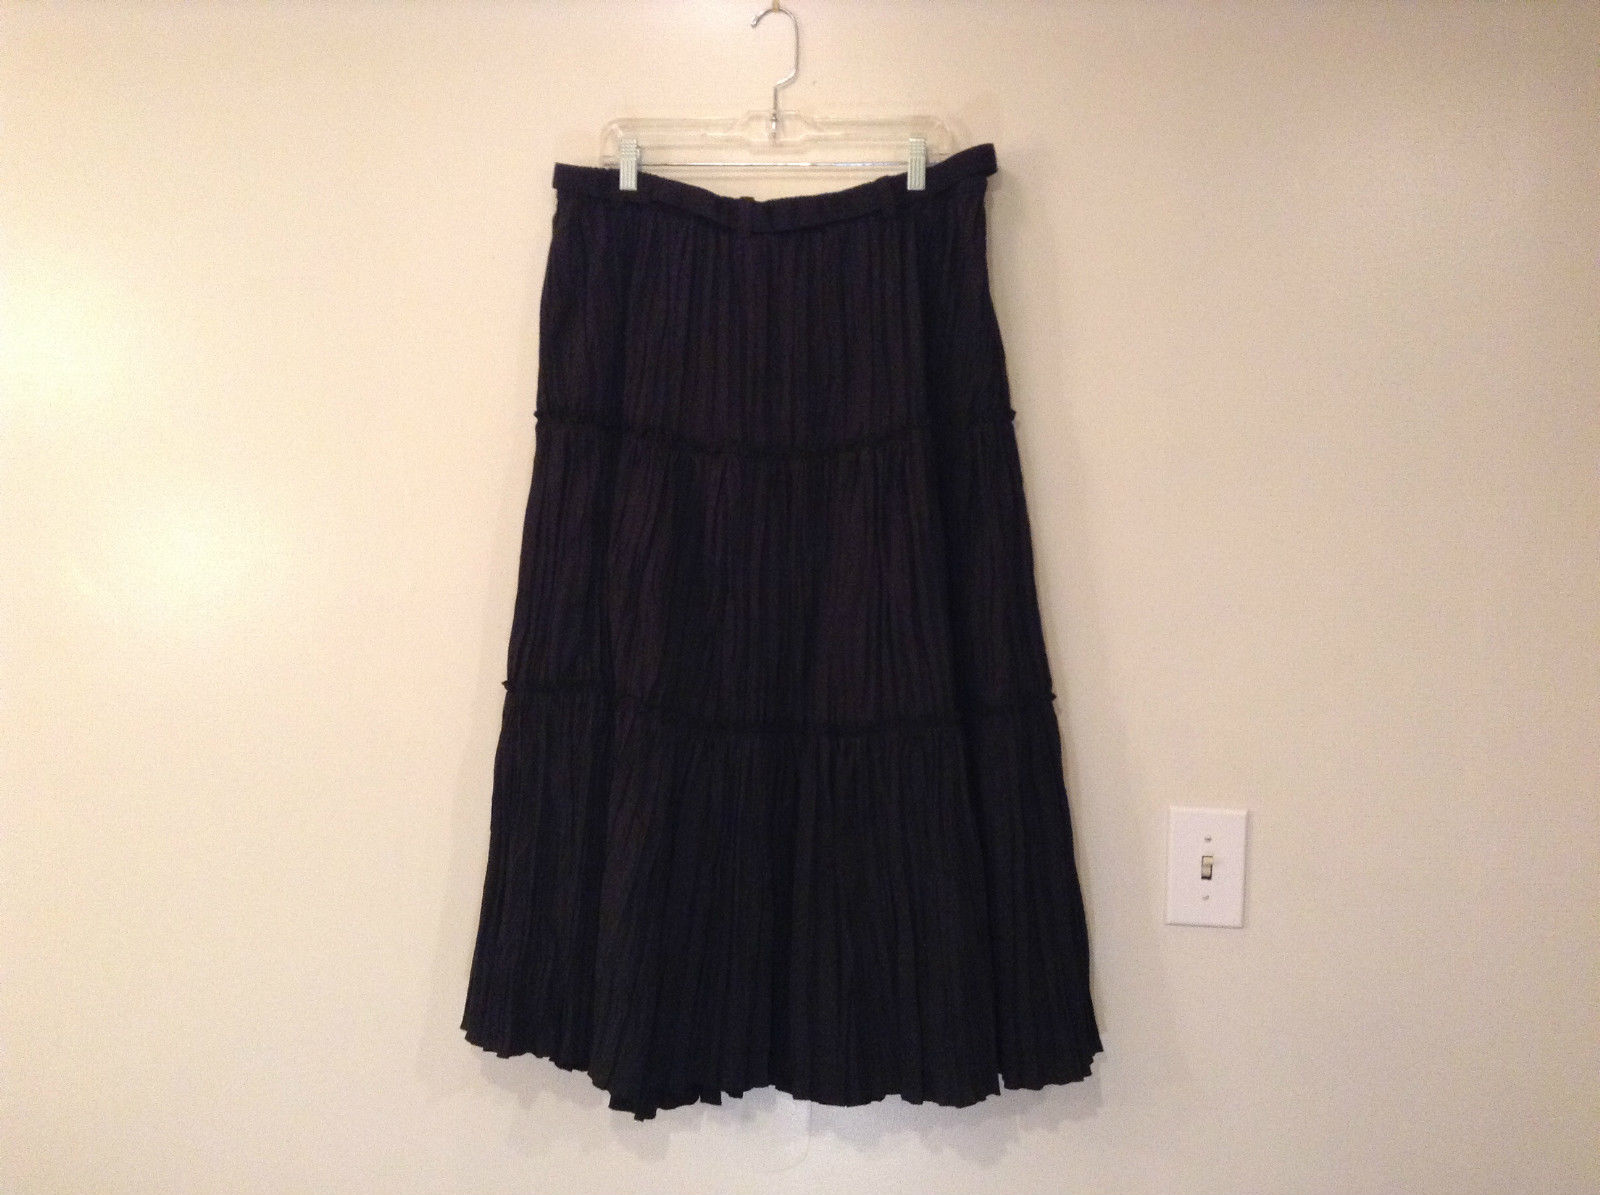 Isaac Mizrahi Black Pleated Skirt with Belt Size XXL Elastic Waist